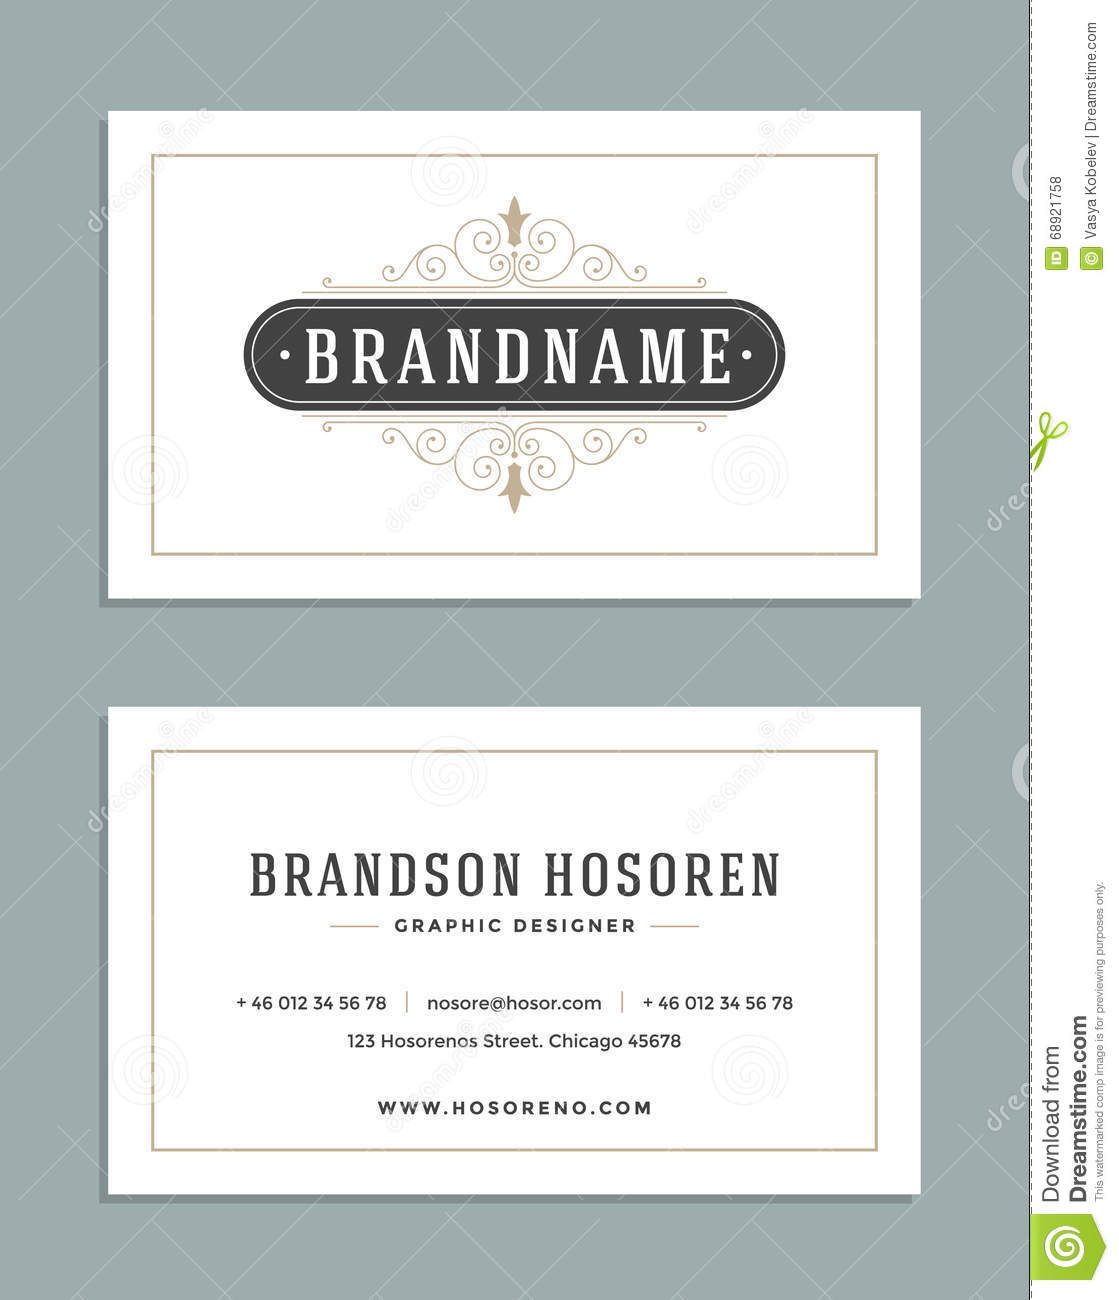 Vintage Ornament Business Card Vector Template. Retro Luxury Logo, Royal Design. Flourishes frame.